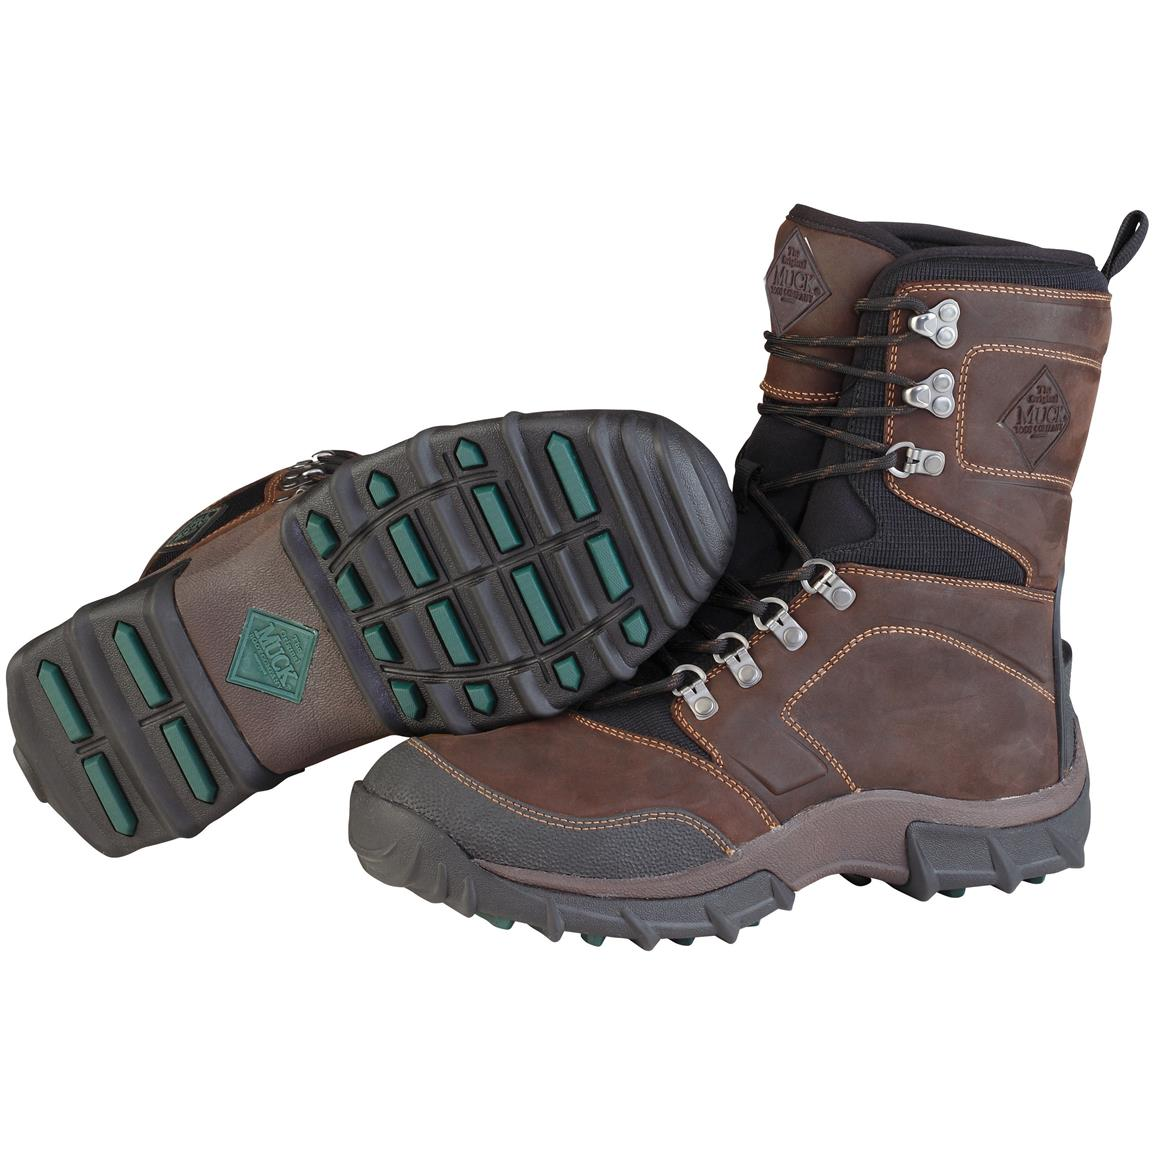 Muck Boots® Peak Hardcore Hiking Boots, Brown / Black